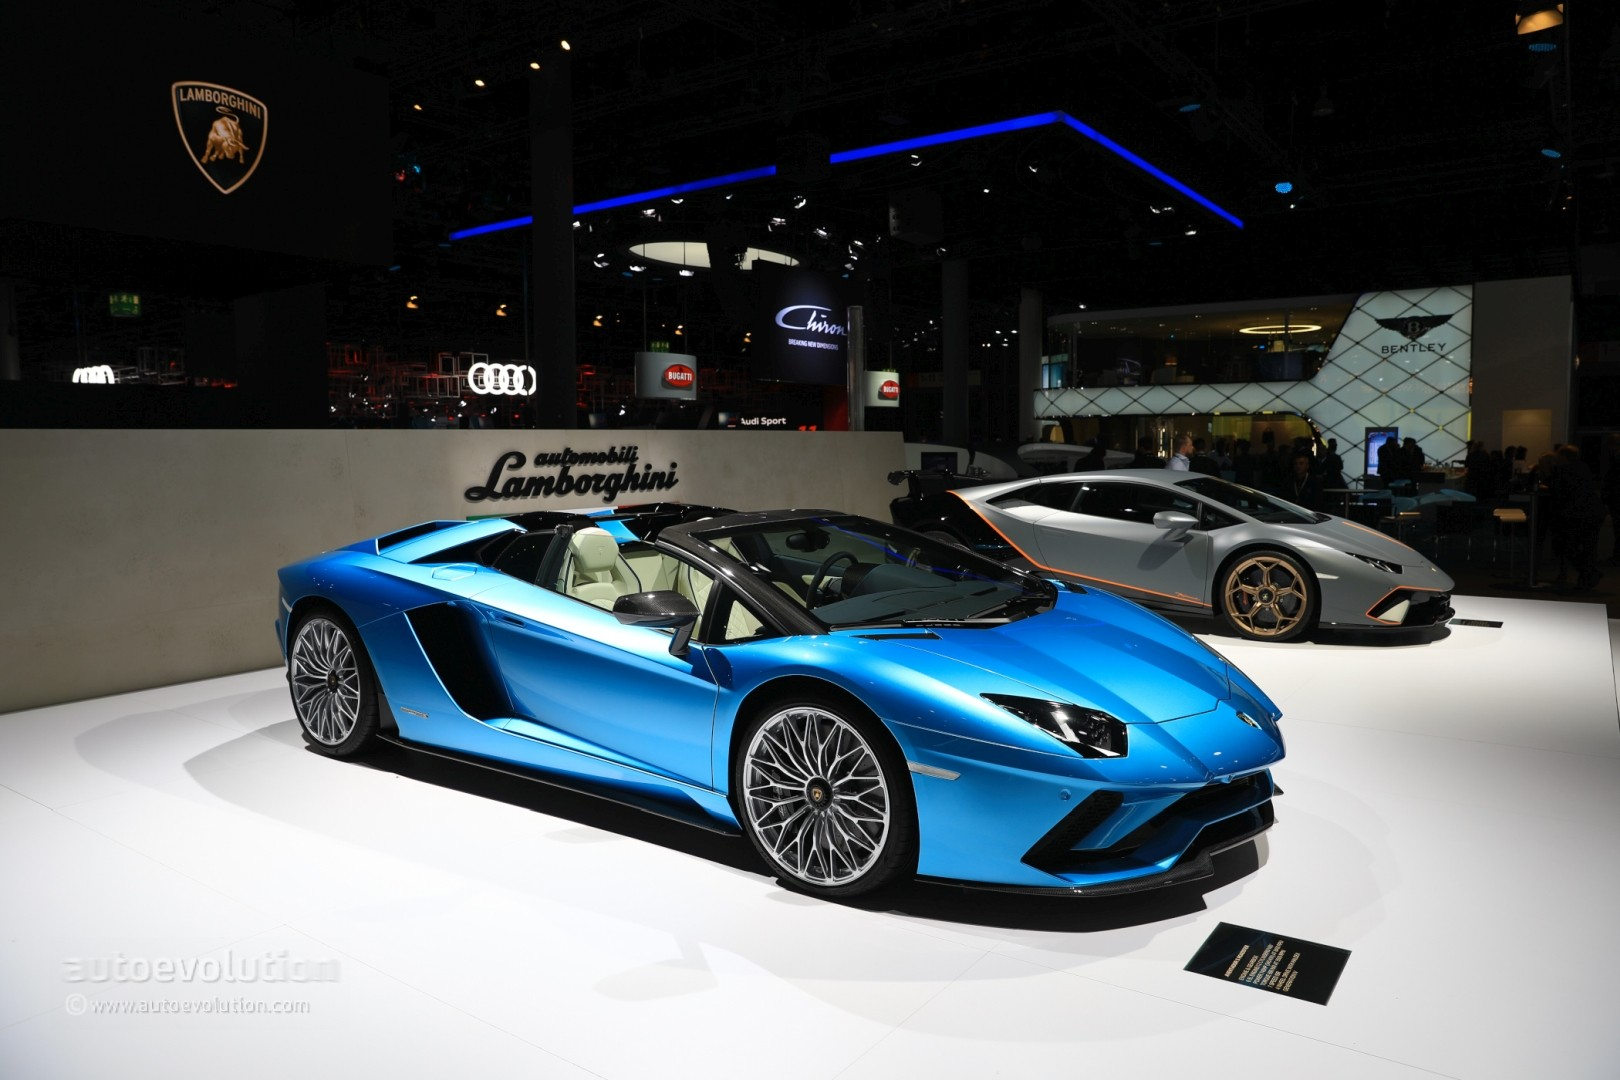 2018 Lamborghini Aventador S Roadster Rendered As The Supercar We Need Right Now Autoevolution